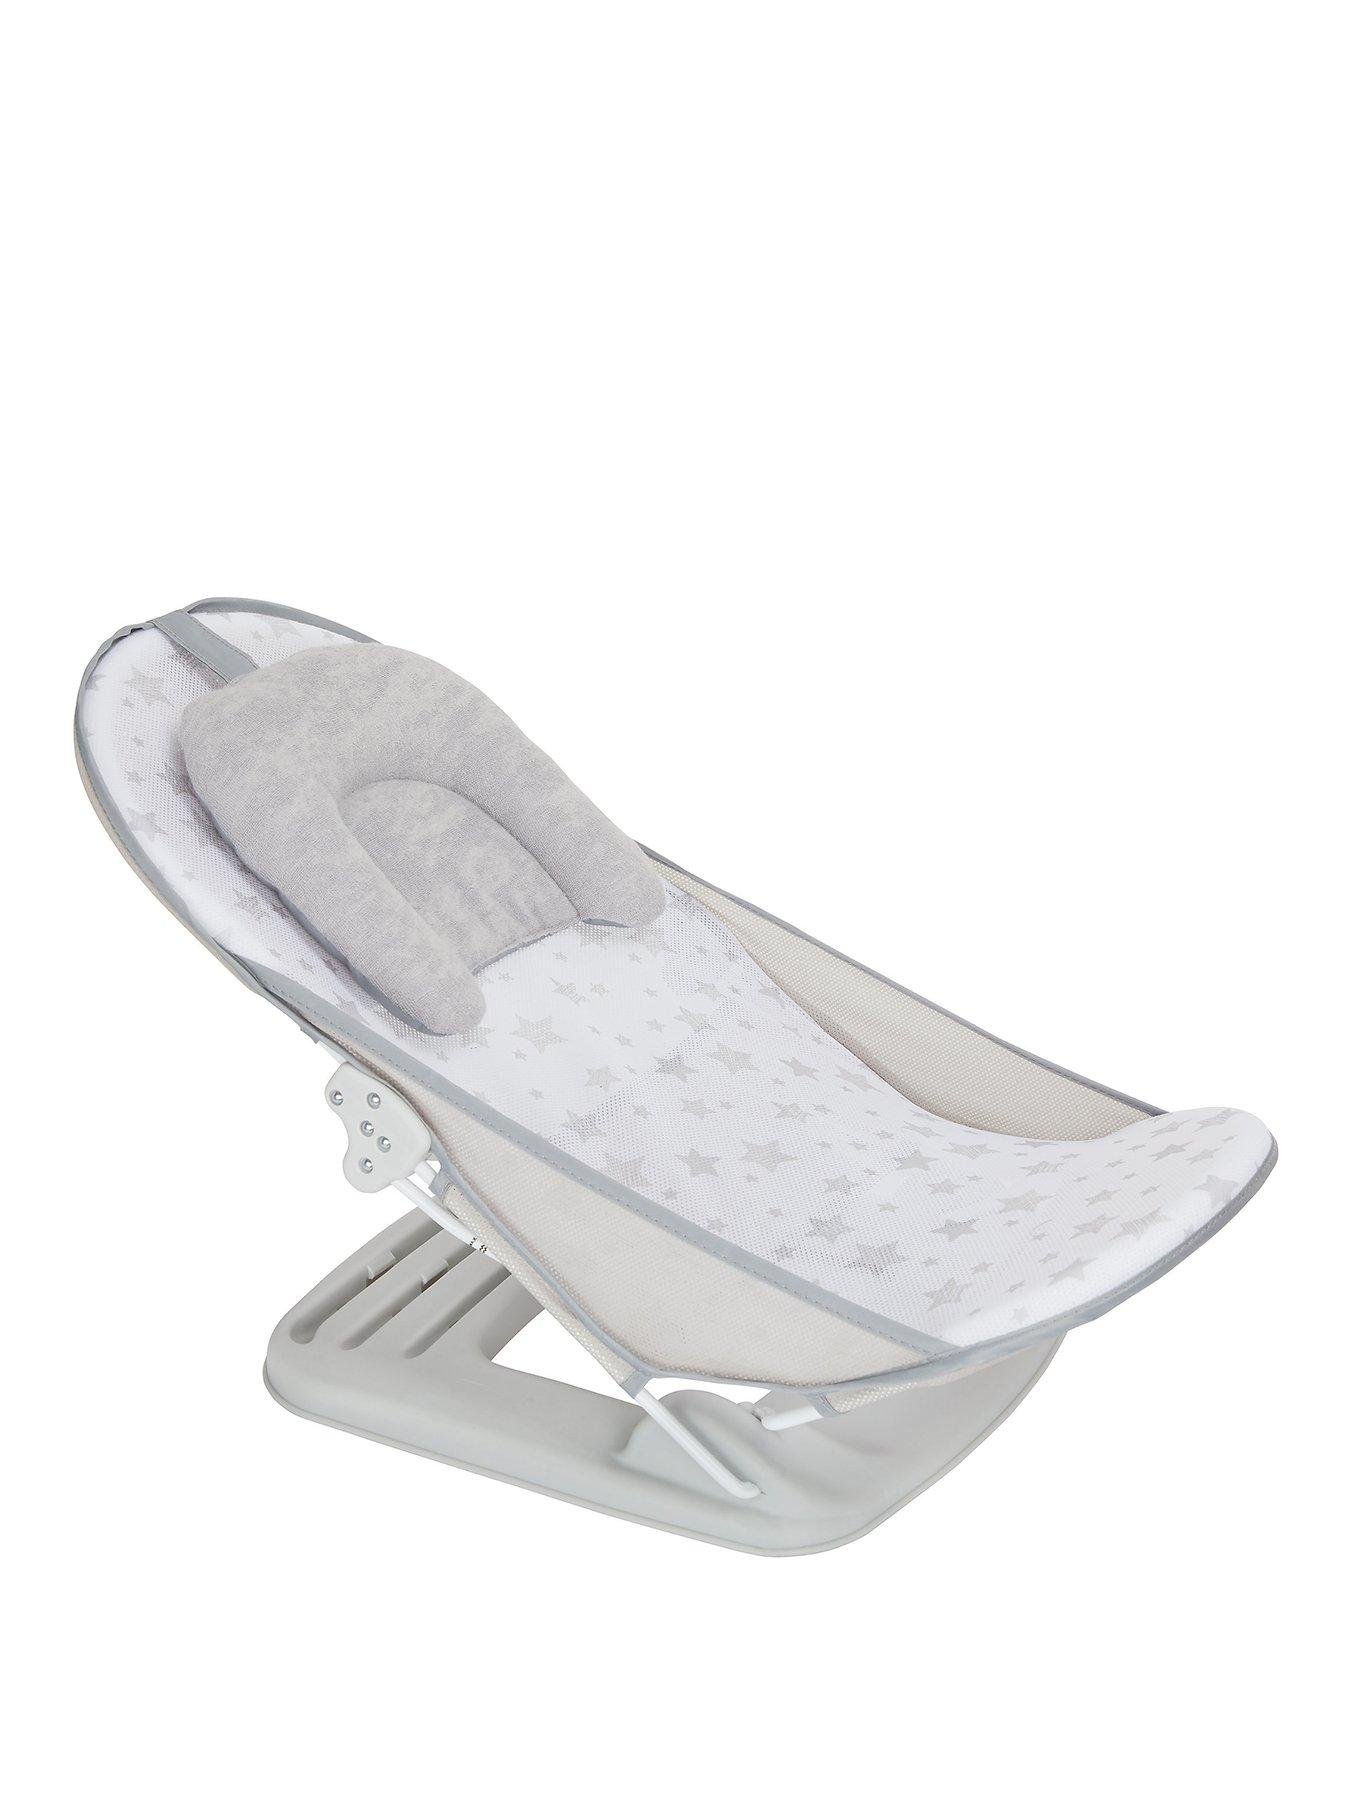 baby bath chair mothercare dining chairs fabric baths sets littlewoods grey stars bather unisex